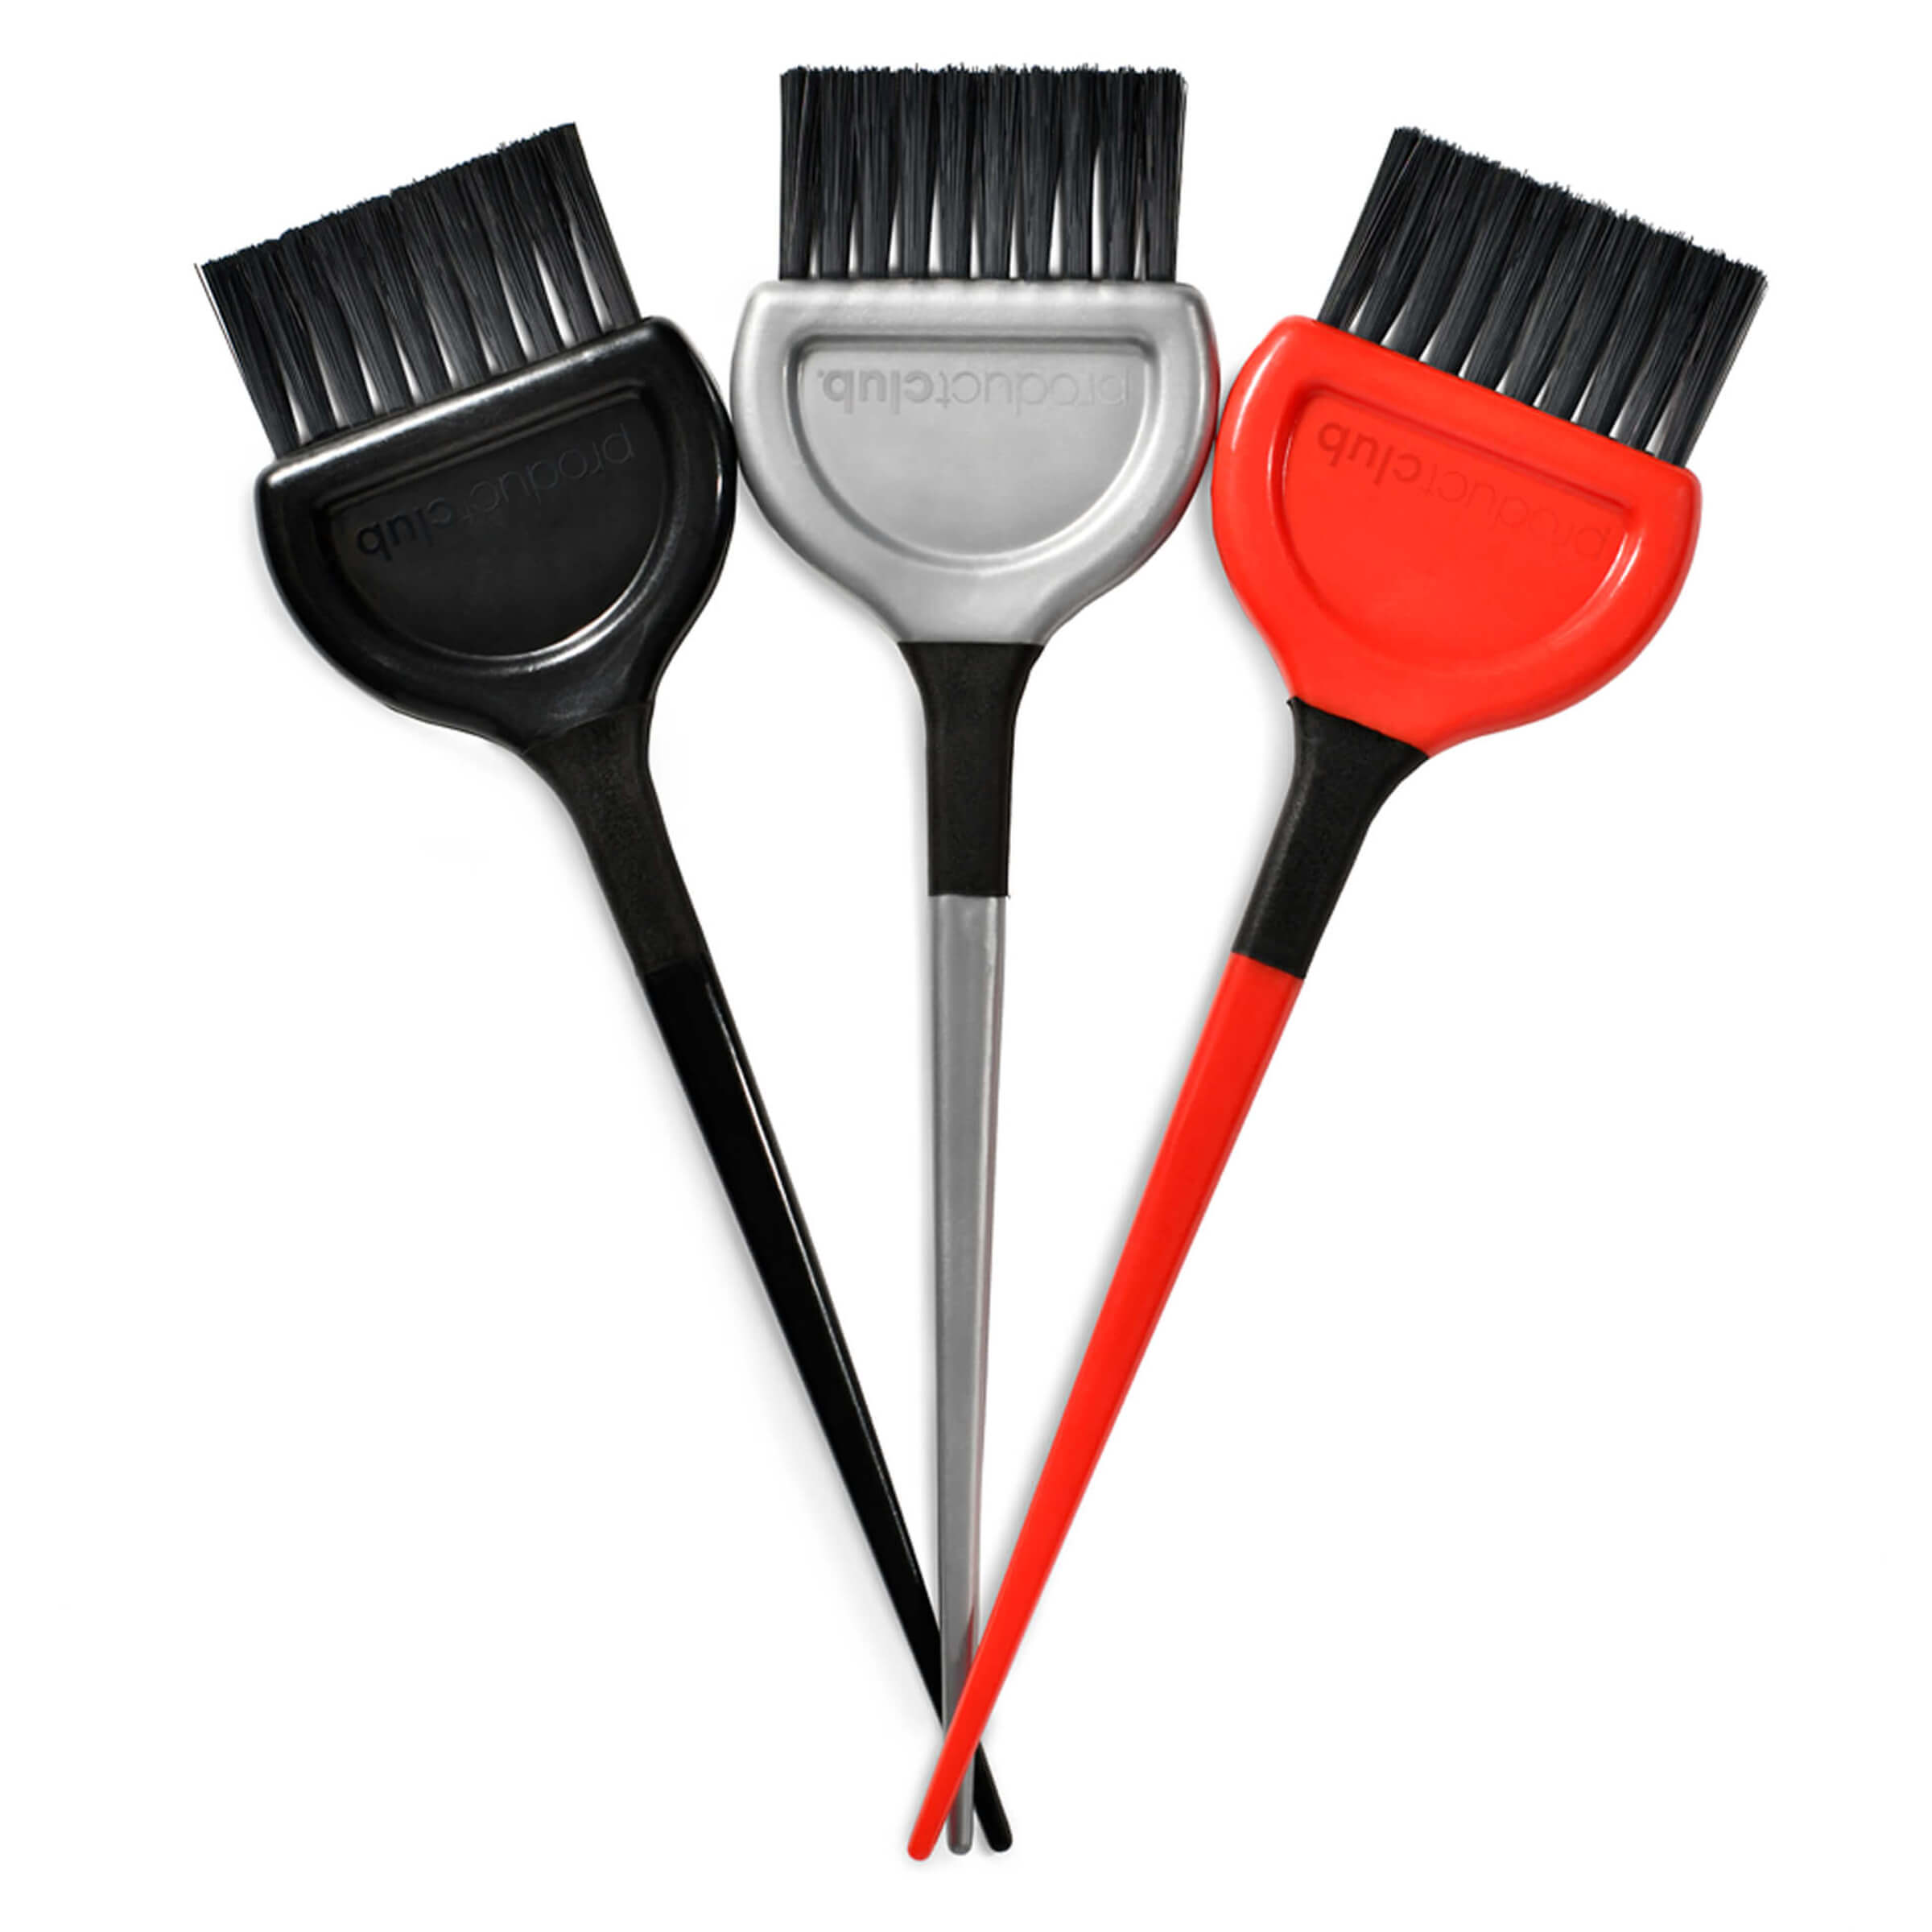 Ergo Hair Colorist Brushes